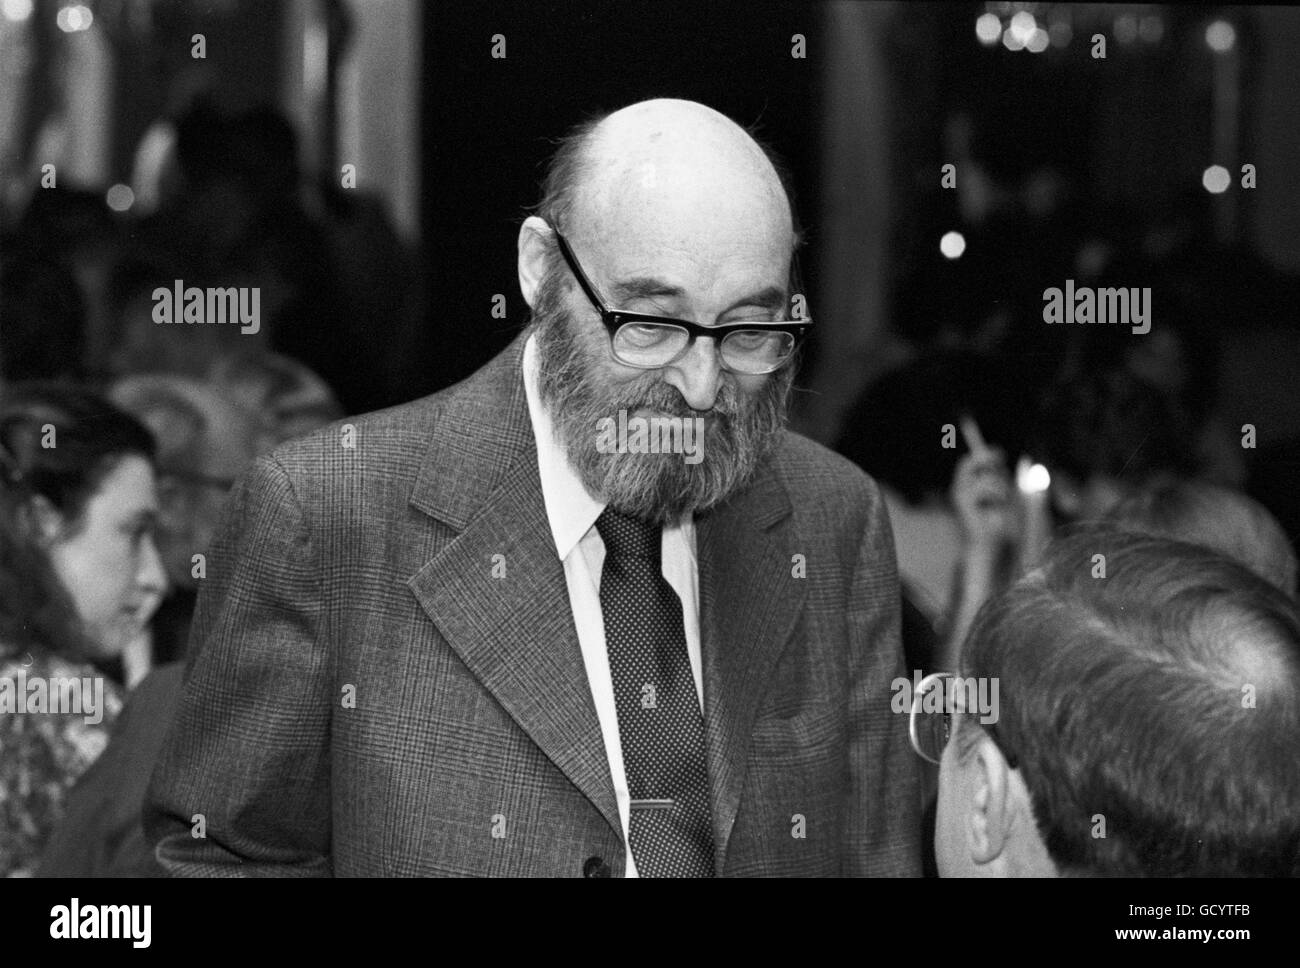 Frederic Dannay, otherwise known as Ellery Queen - Stock Image